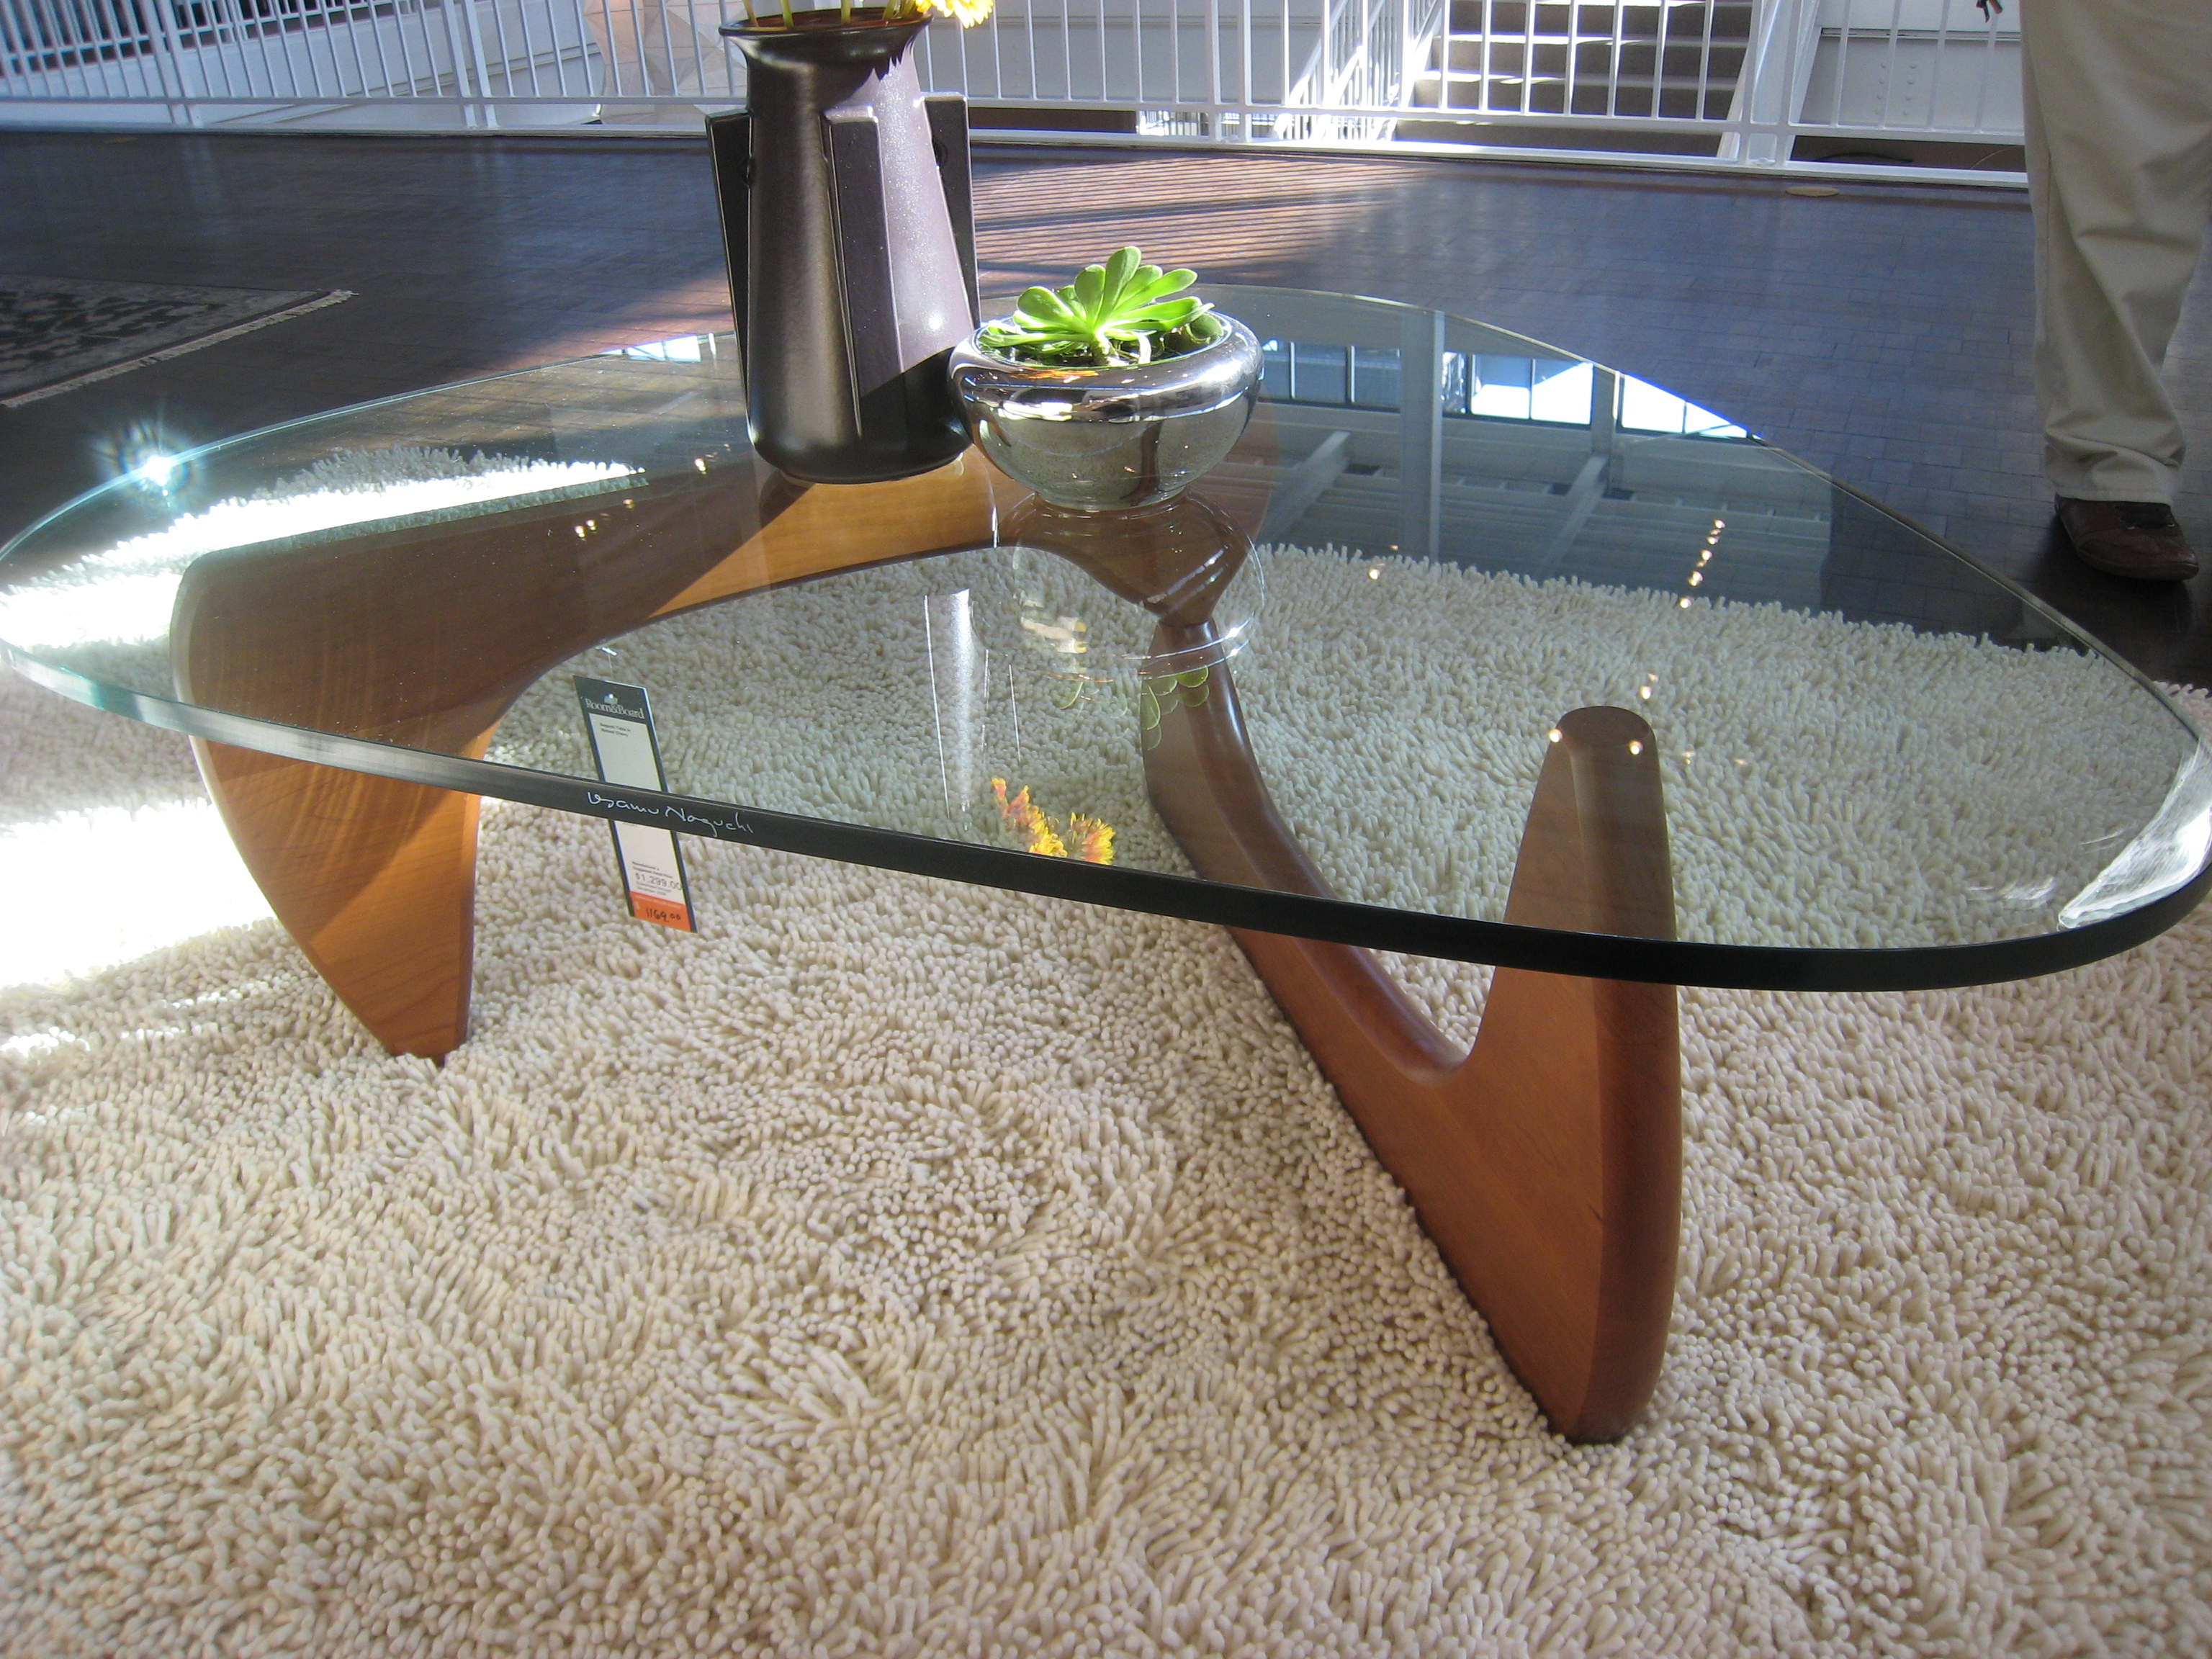 filenoguchi coffee table ()  wikimedia commons - filenoguchi coffee table ()